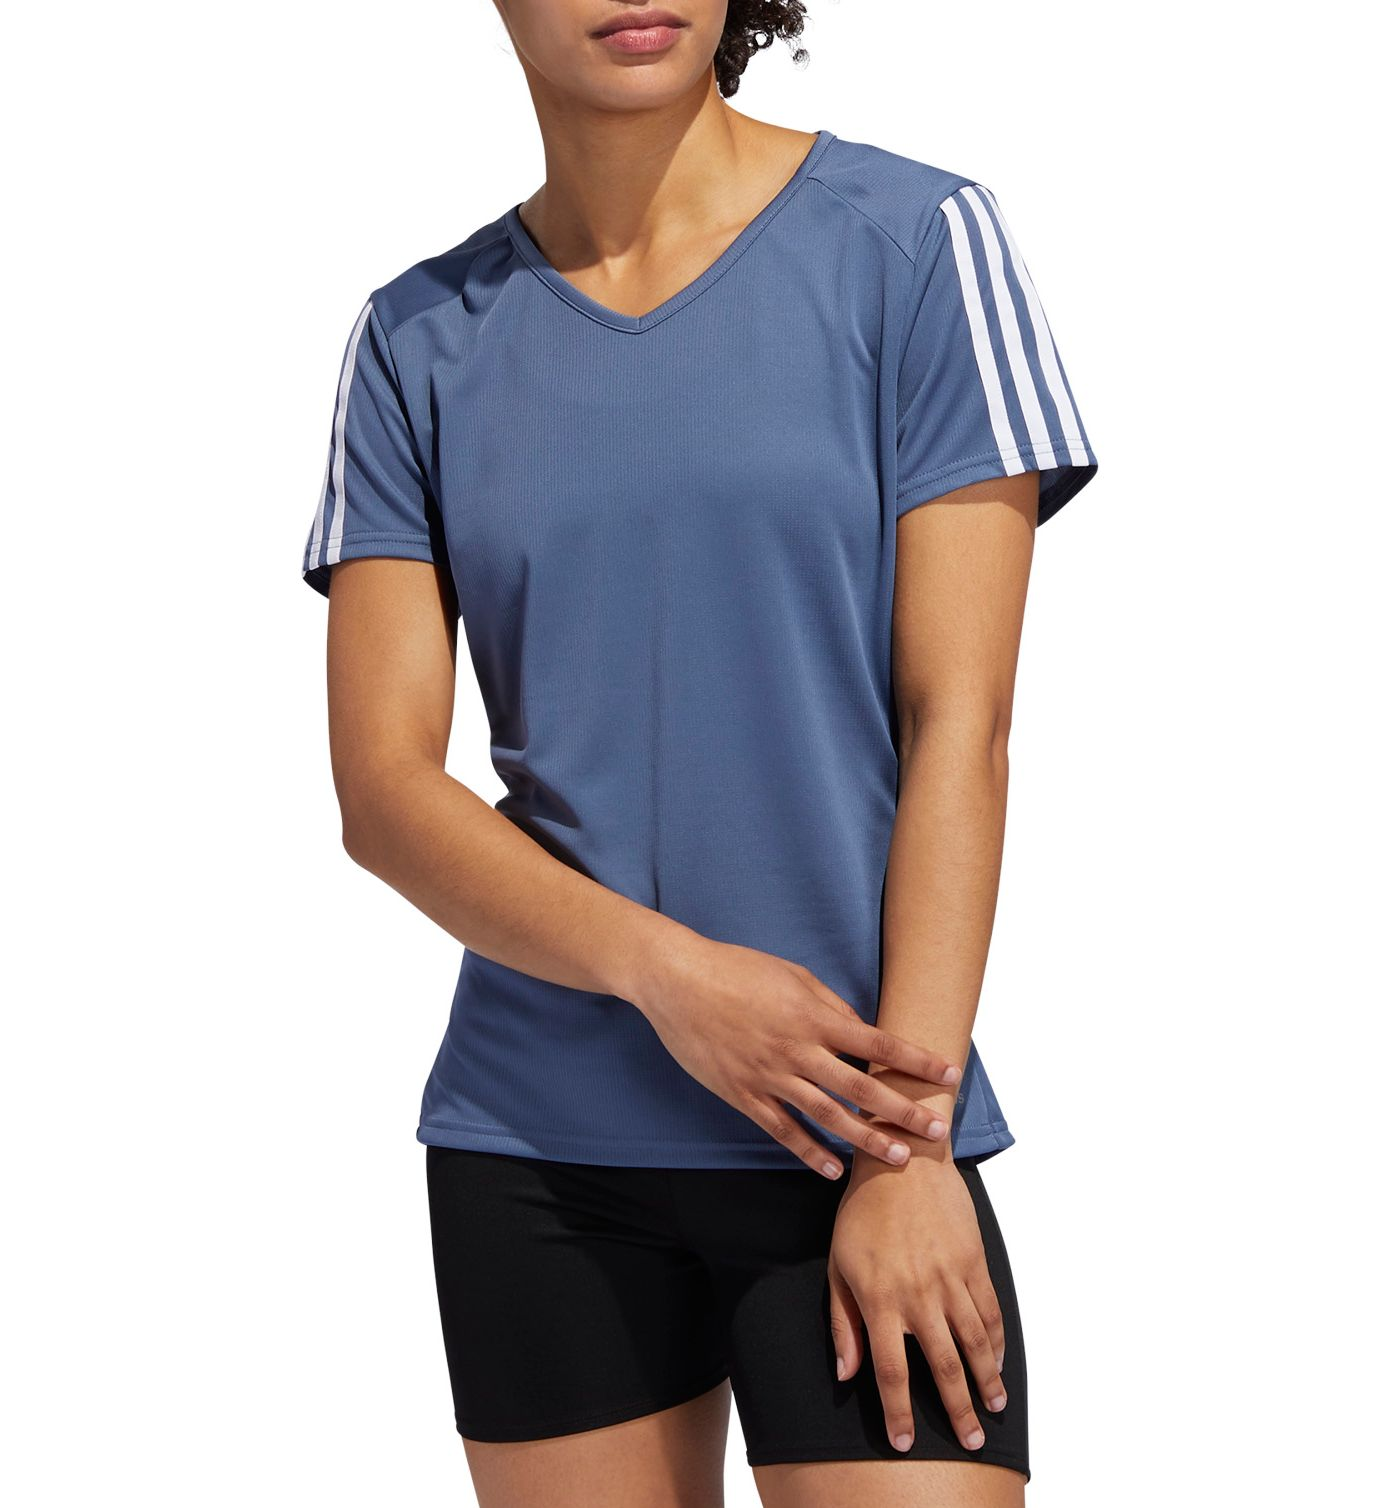 adidas Women's Run It 3-Stripe T-Shirt